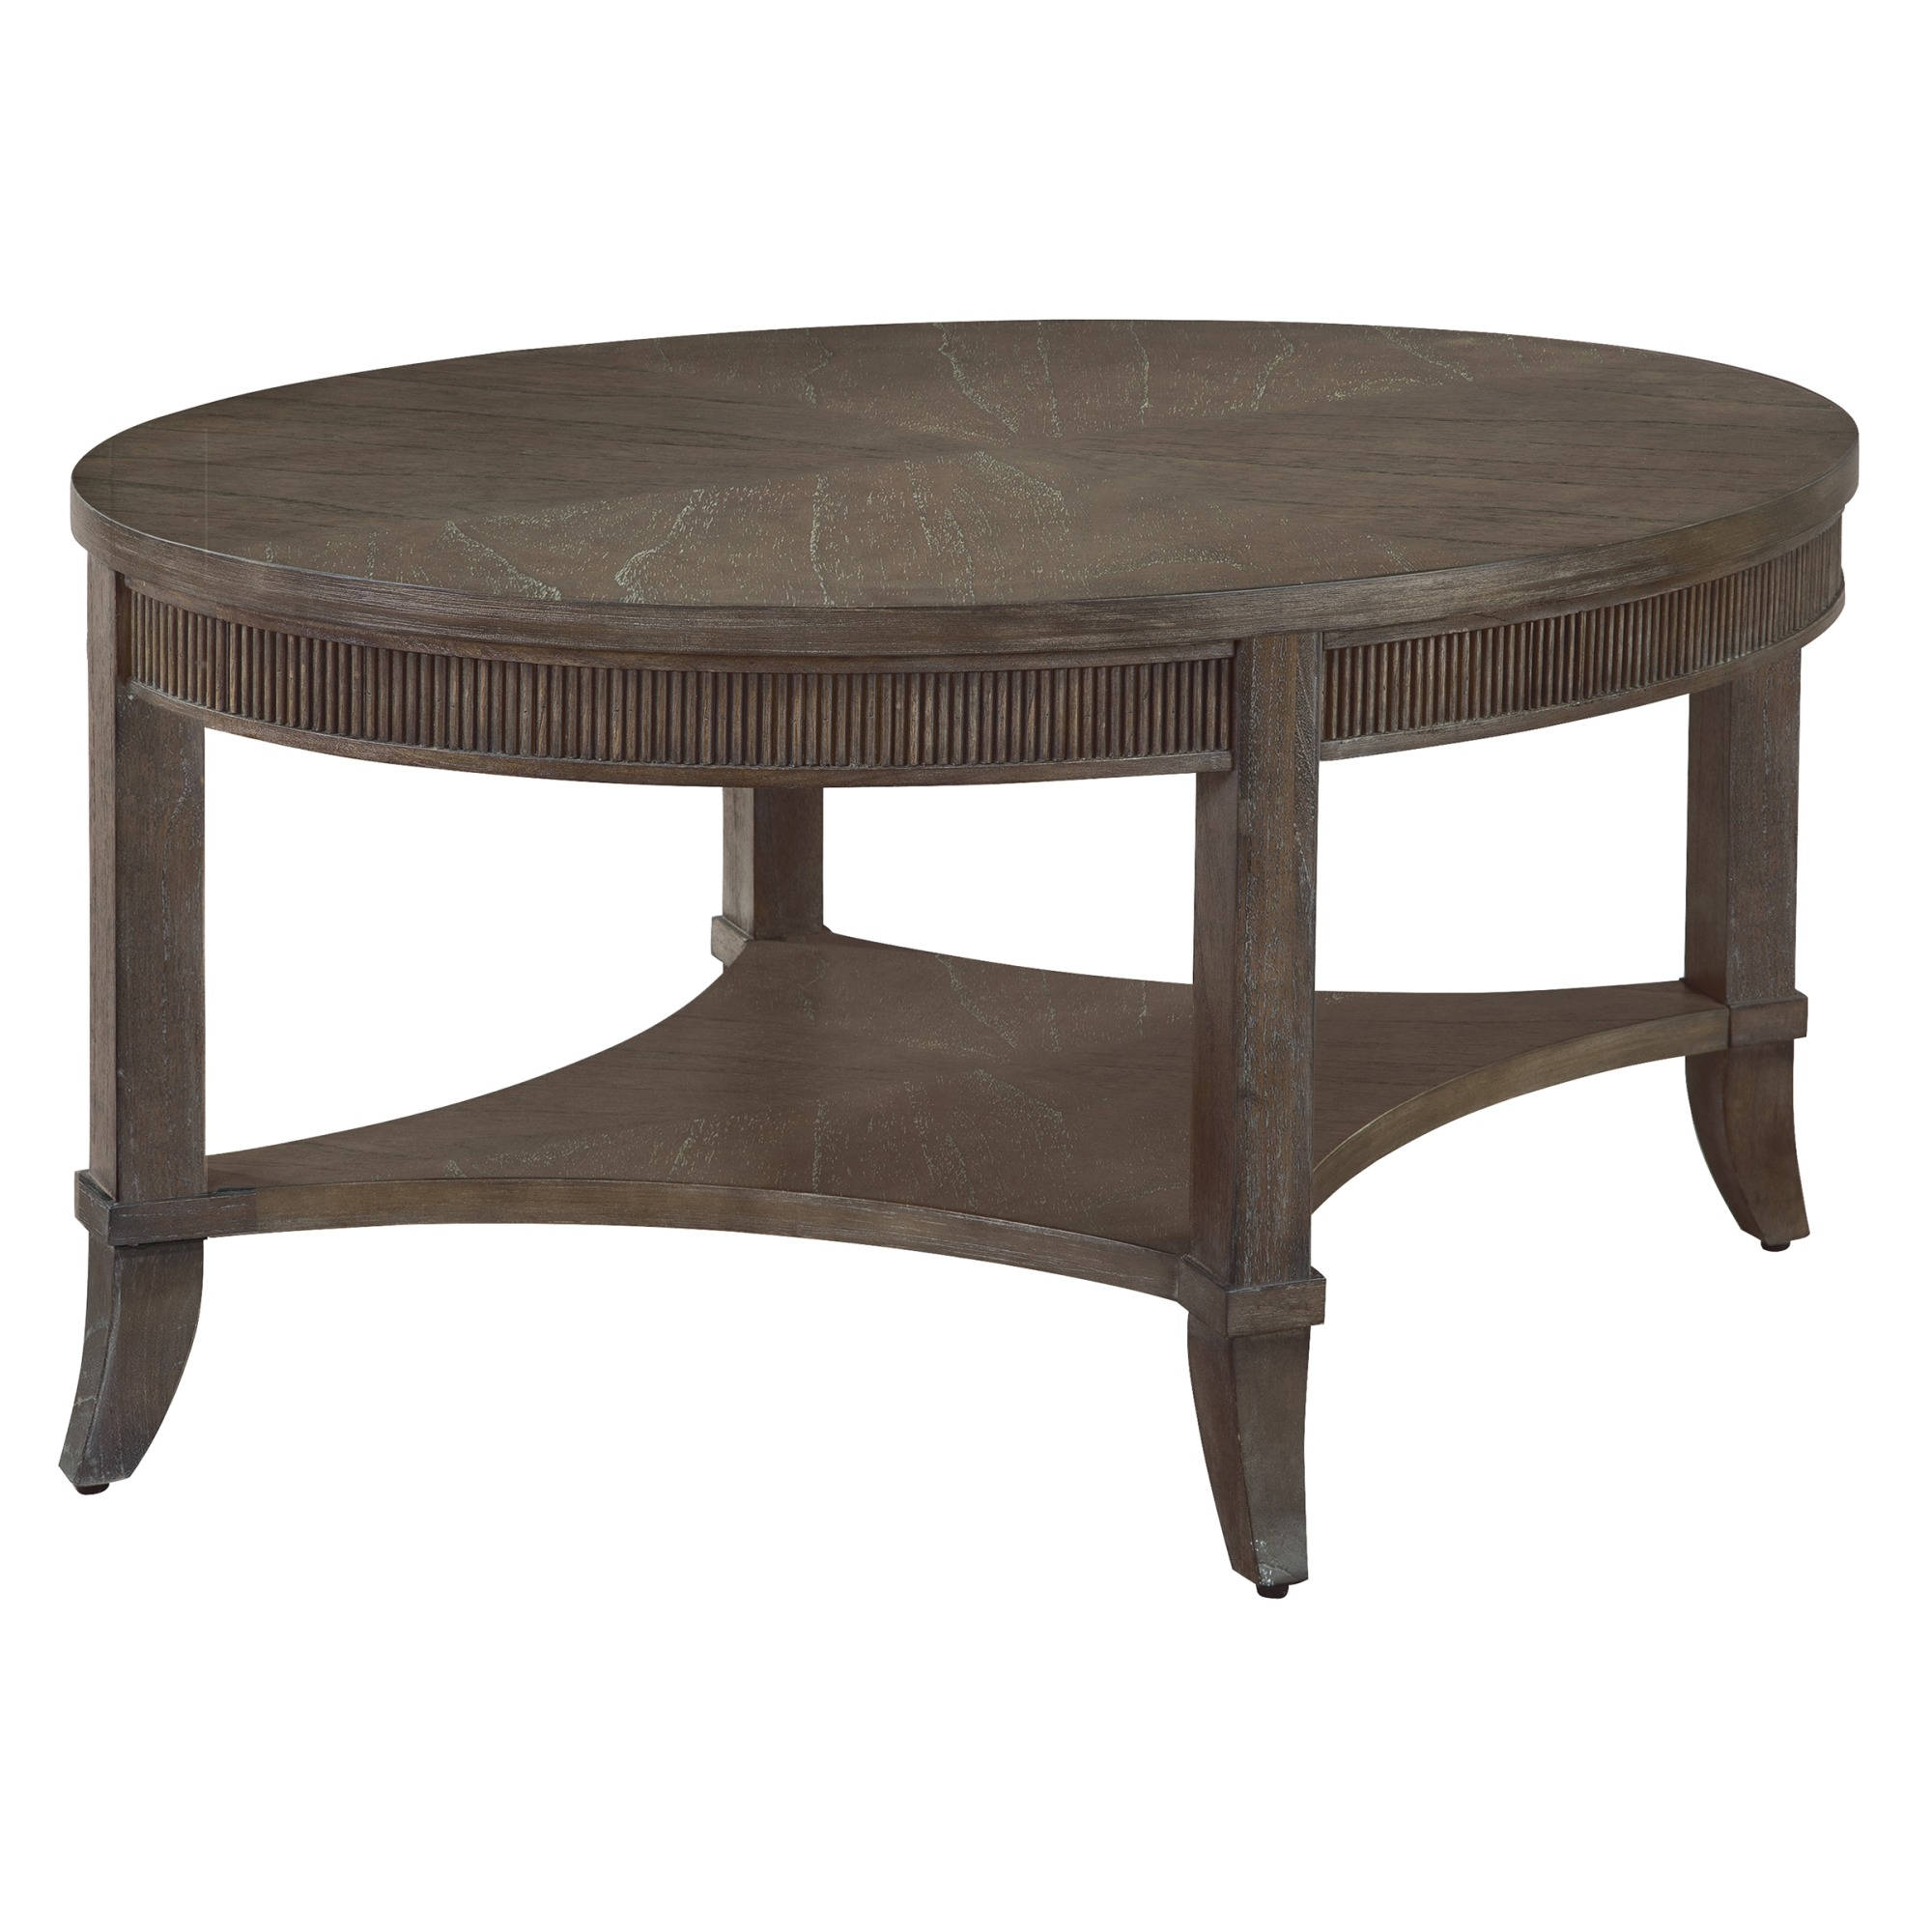 Image for 952210SU Urban Retreat Oval Coffee Table from Hekman Official Website